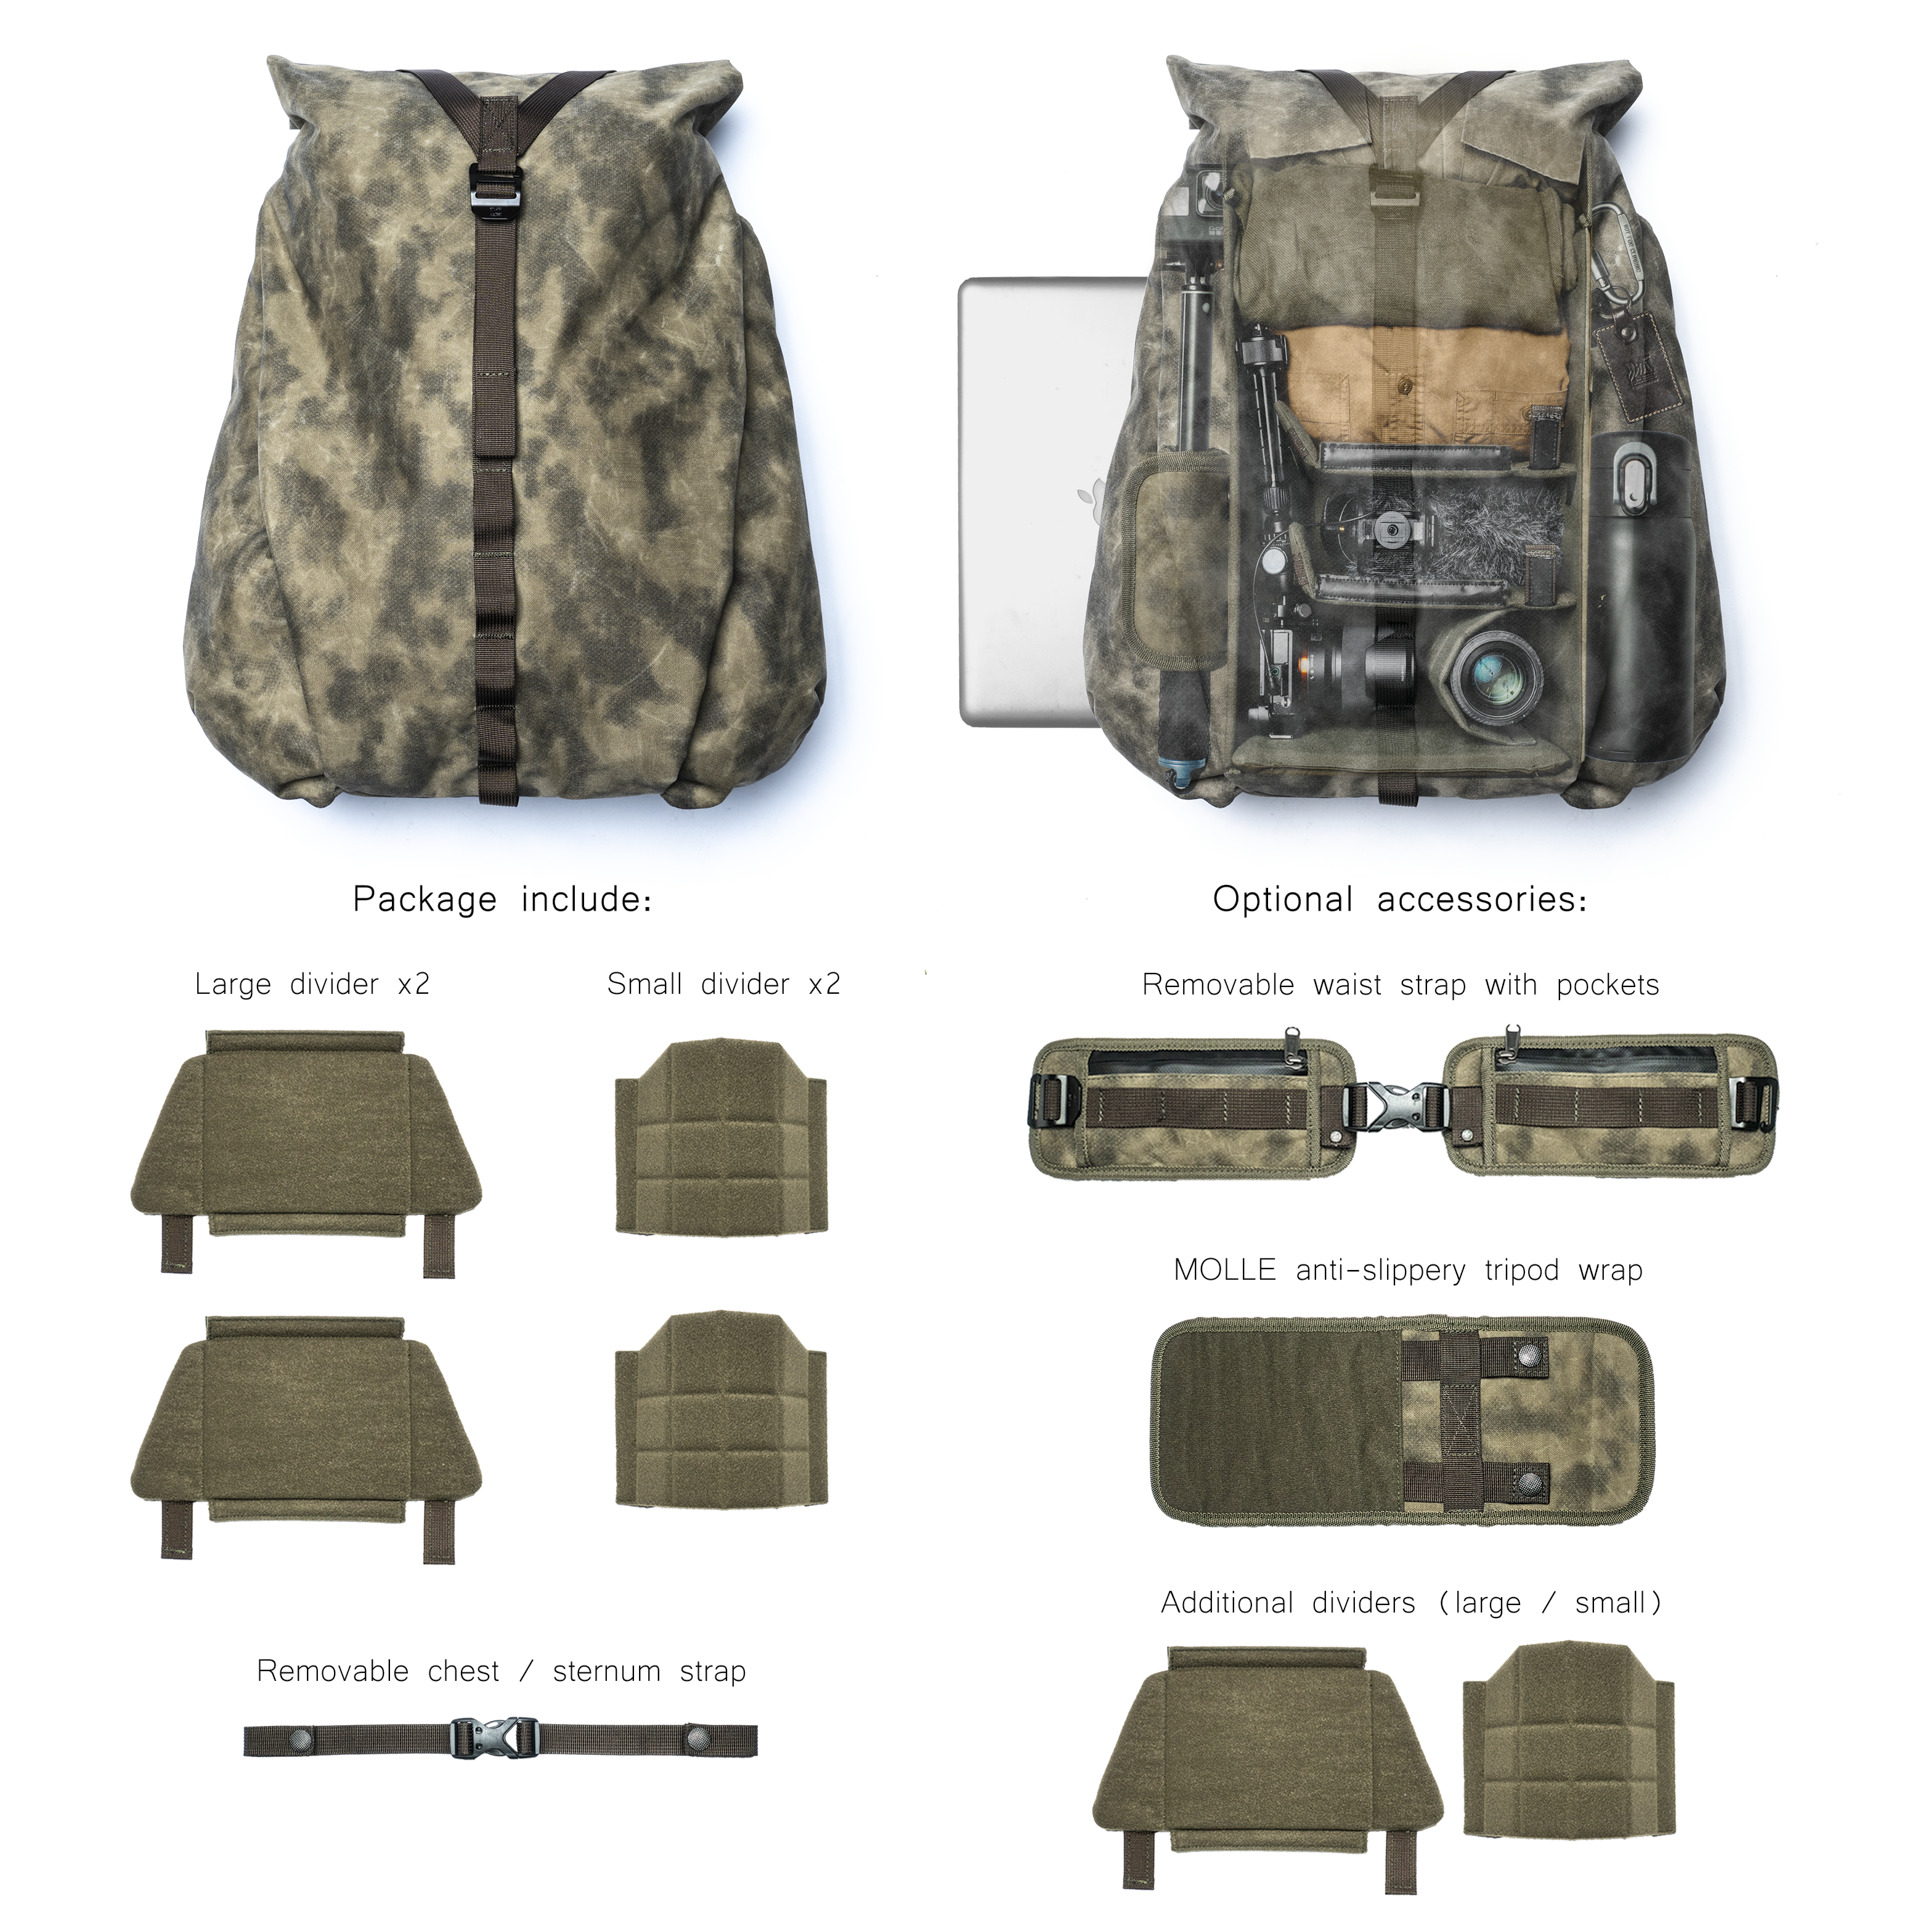 NOMAD product content and accessories